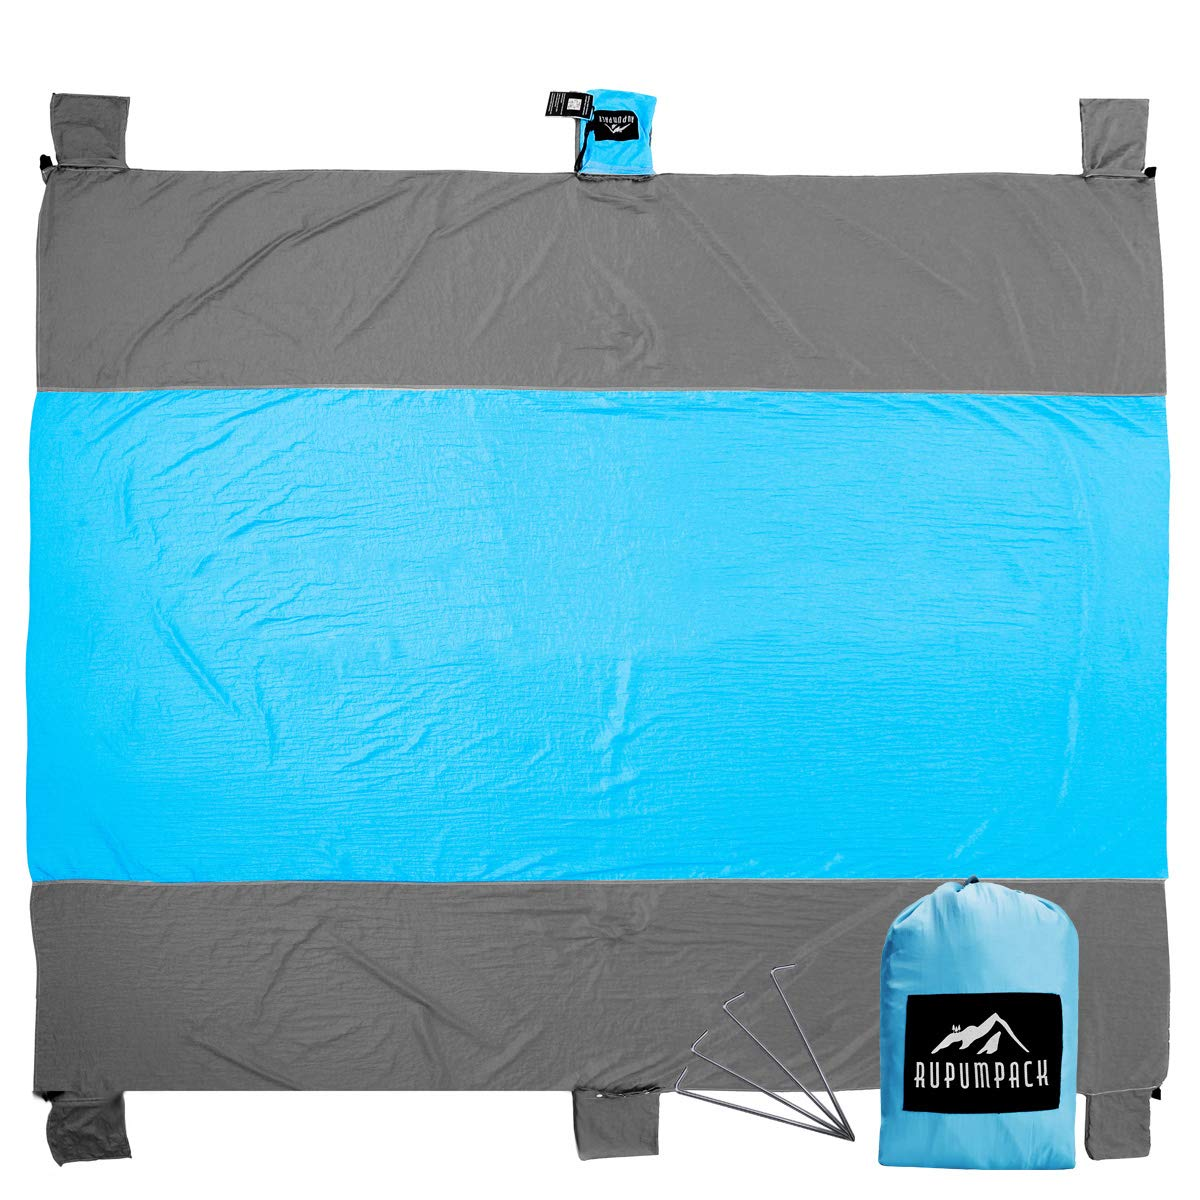 RUPUMPACK Sand Free Compact Huge Quick Drying Lightweight Beach Blanket(Oversized 9' X 10'), Durable Outdoor Soft Picnic Mat with Four Stakes and Sand Anchors, Made of 100% Parachute Nylon